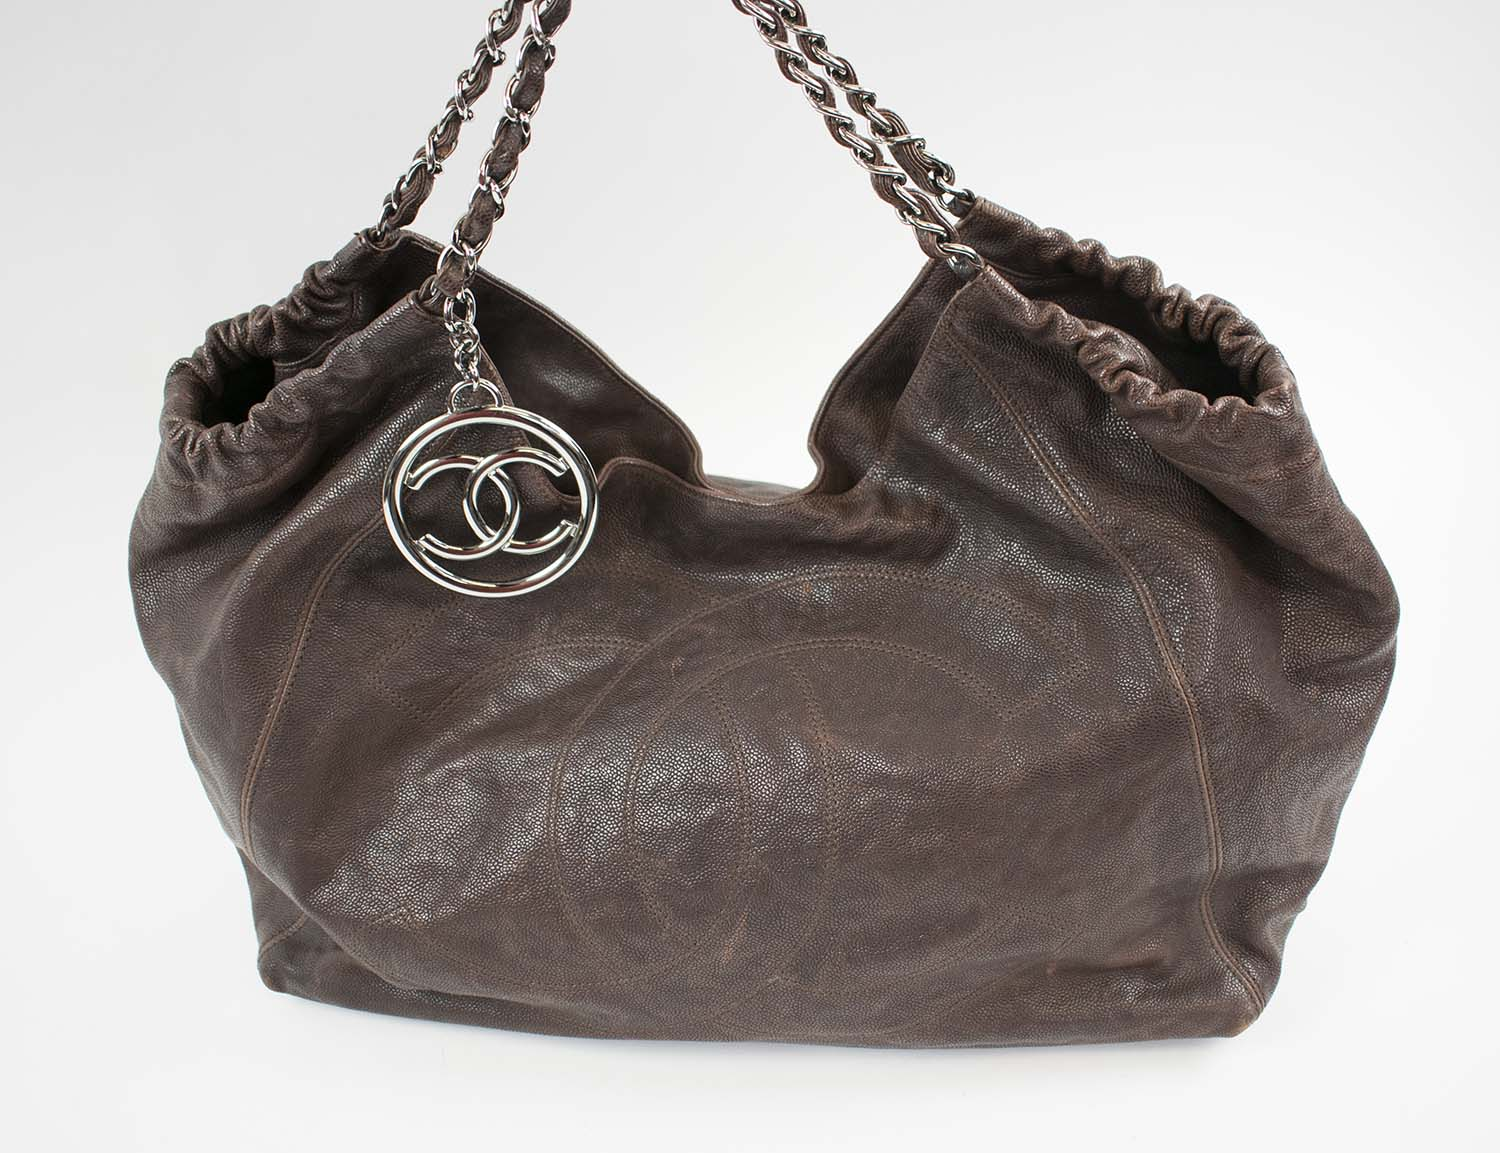 b08106bc8248 CHANEL COCO CABAS HOBO BAG, brown leather grain with silver tone ...